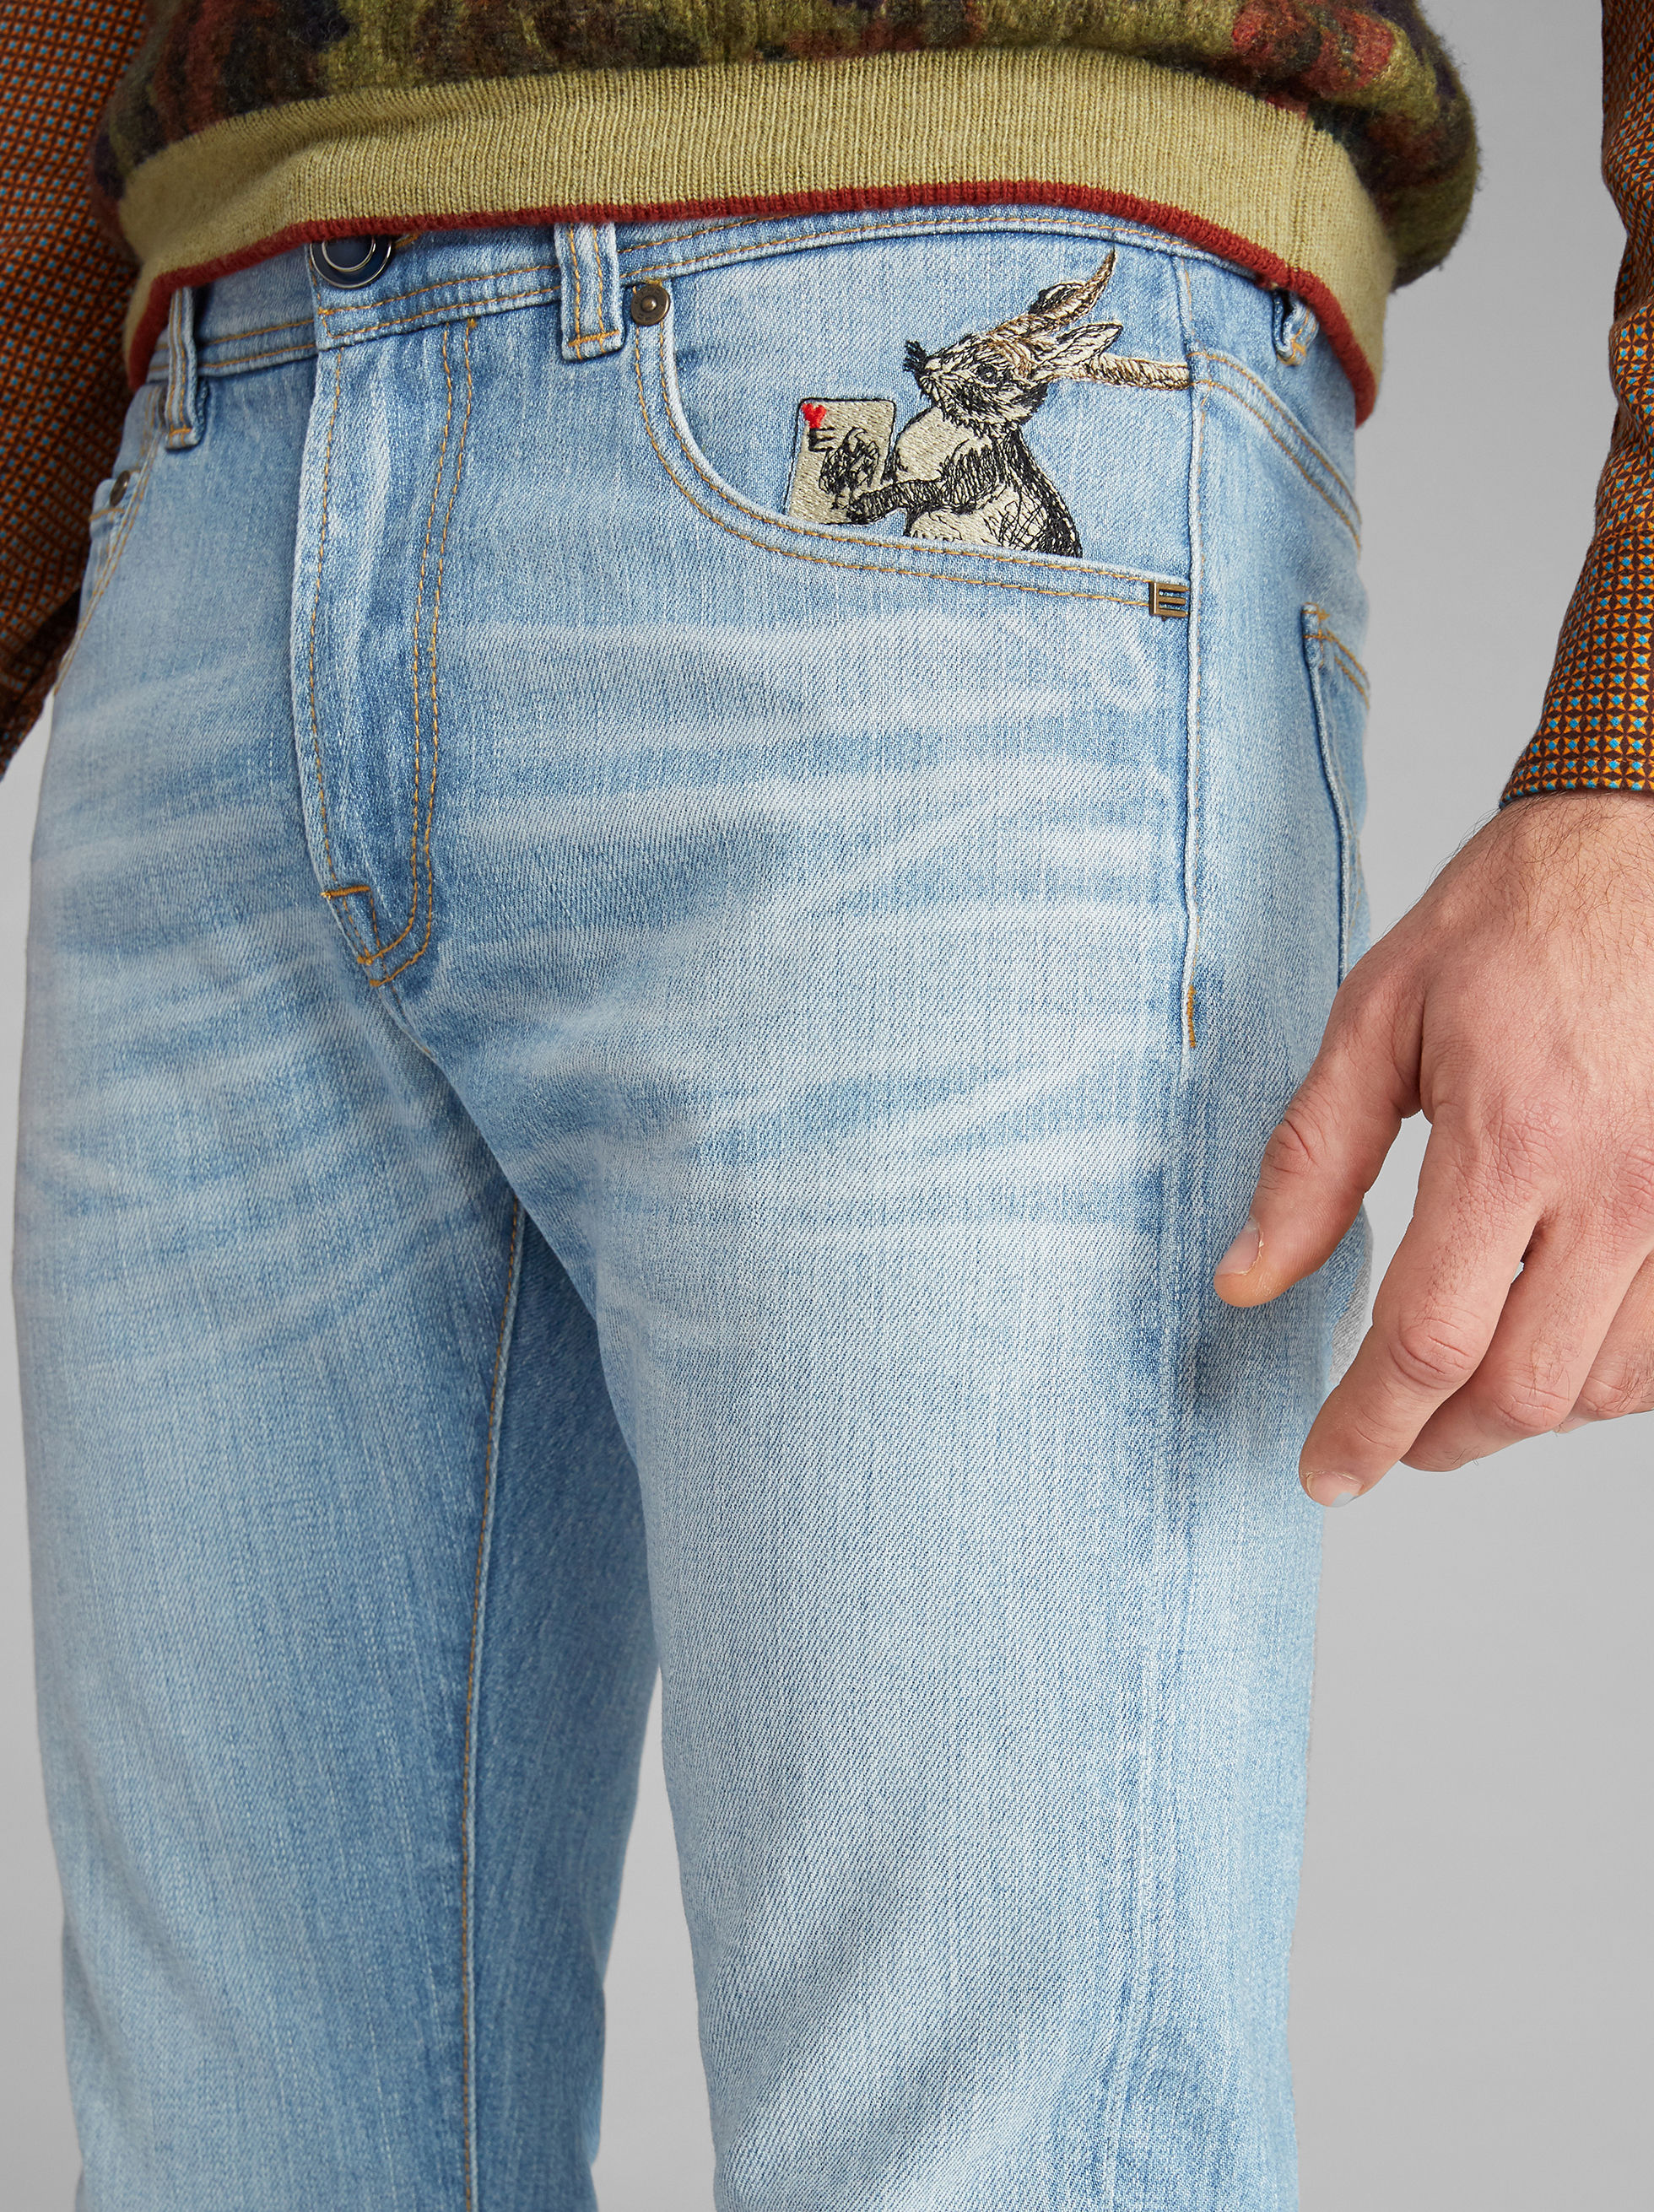 BENETROESSERE JEANS WITH EMBROIDERY